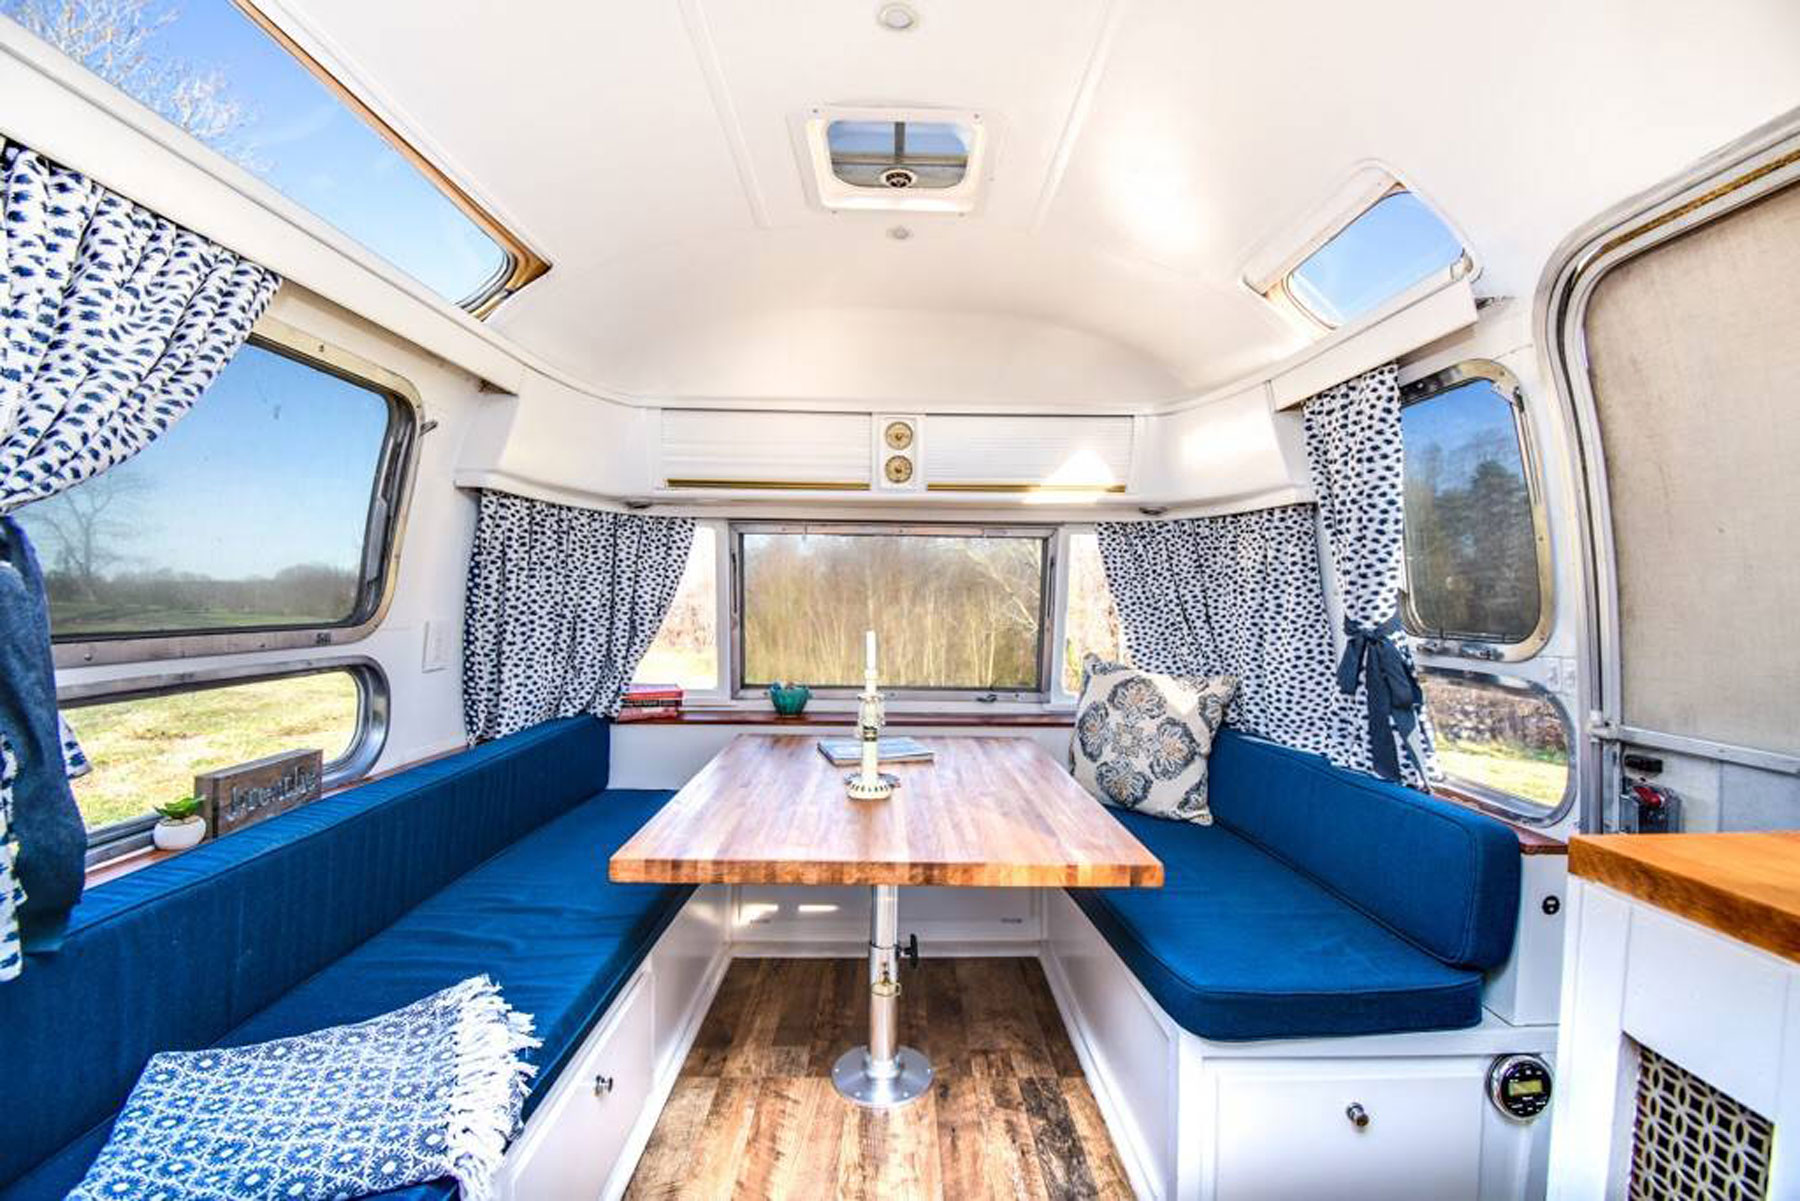 Dining table and booths in airstream trailer